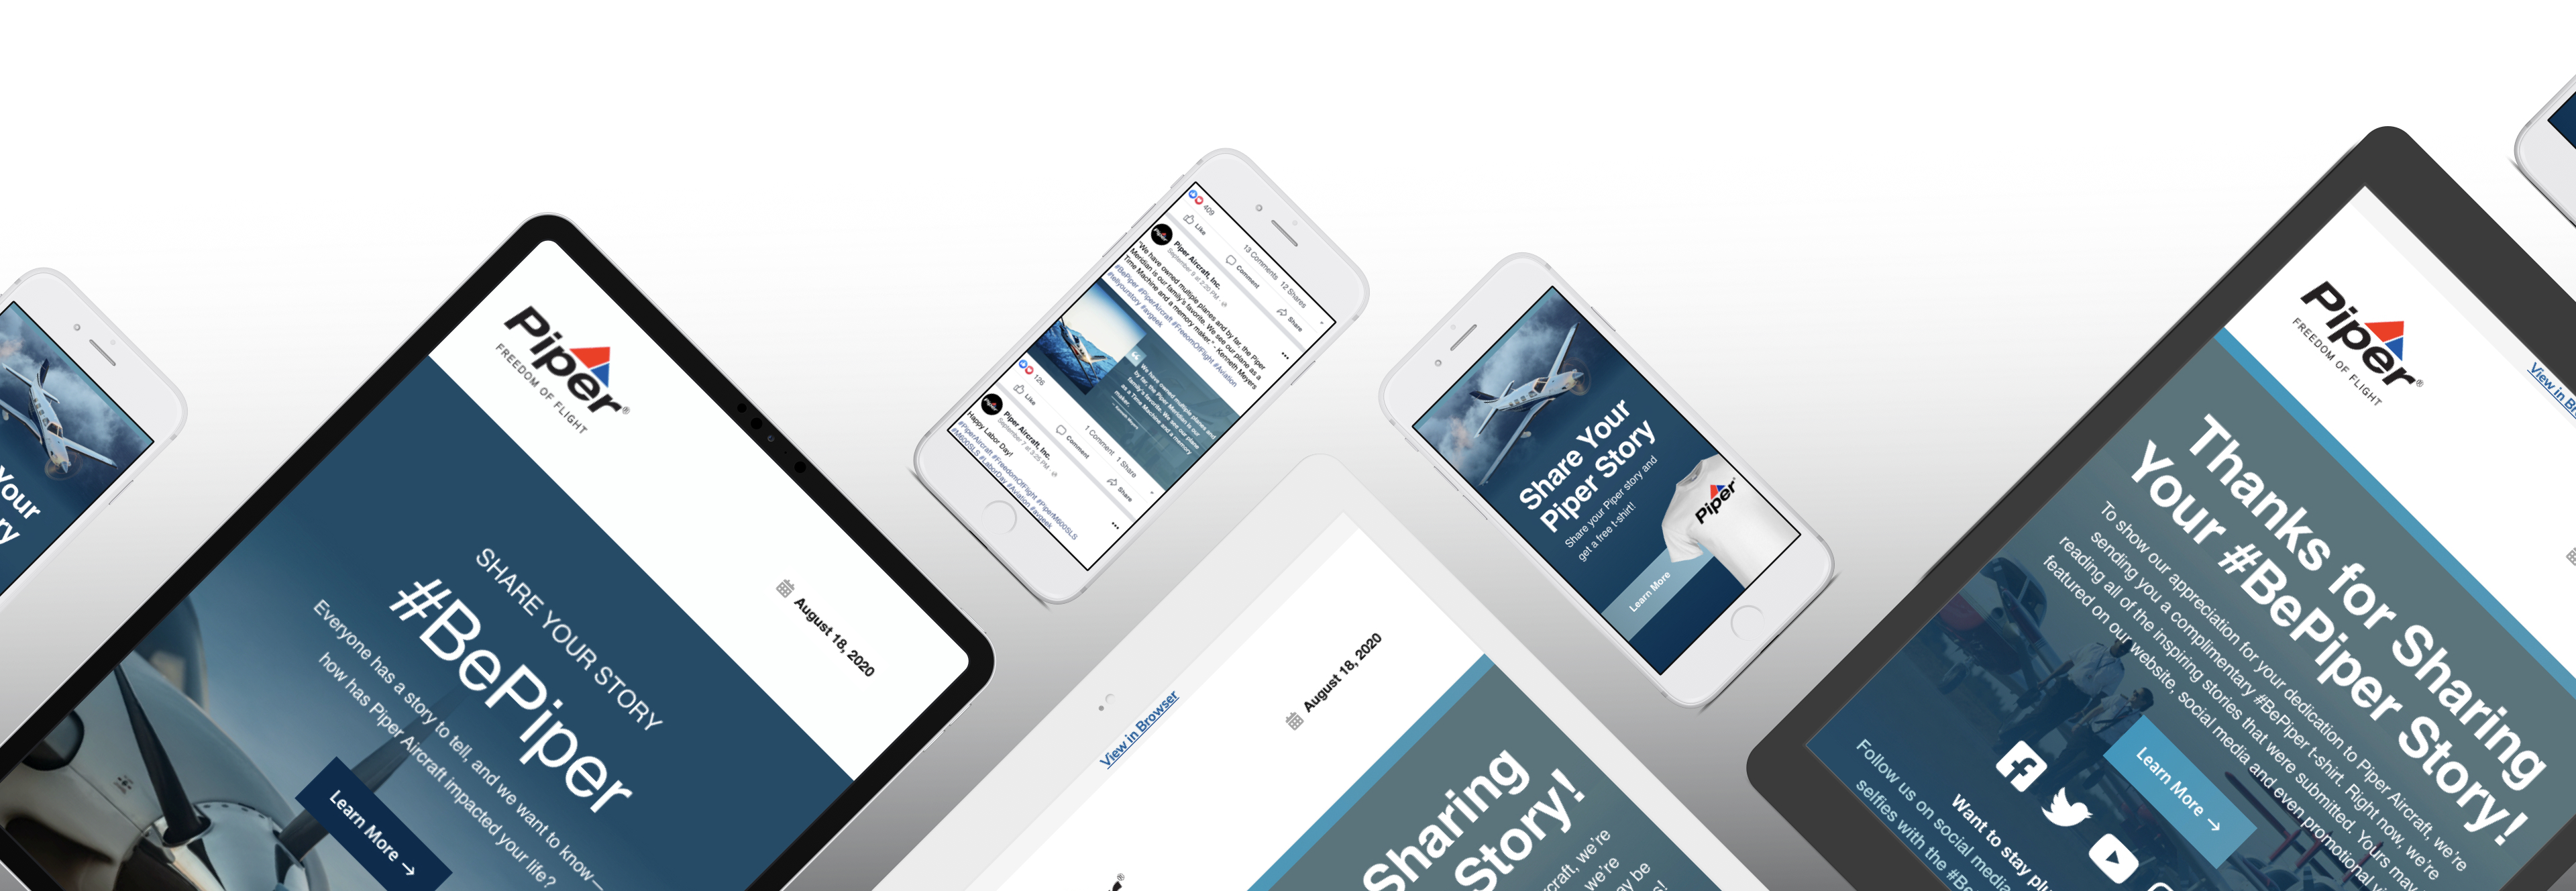 Mobile devices displaying a landing page from Orlando